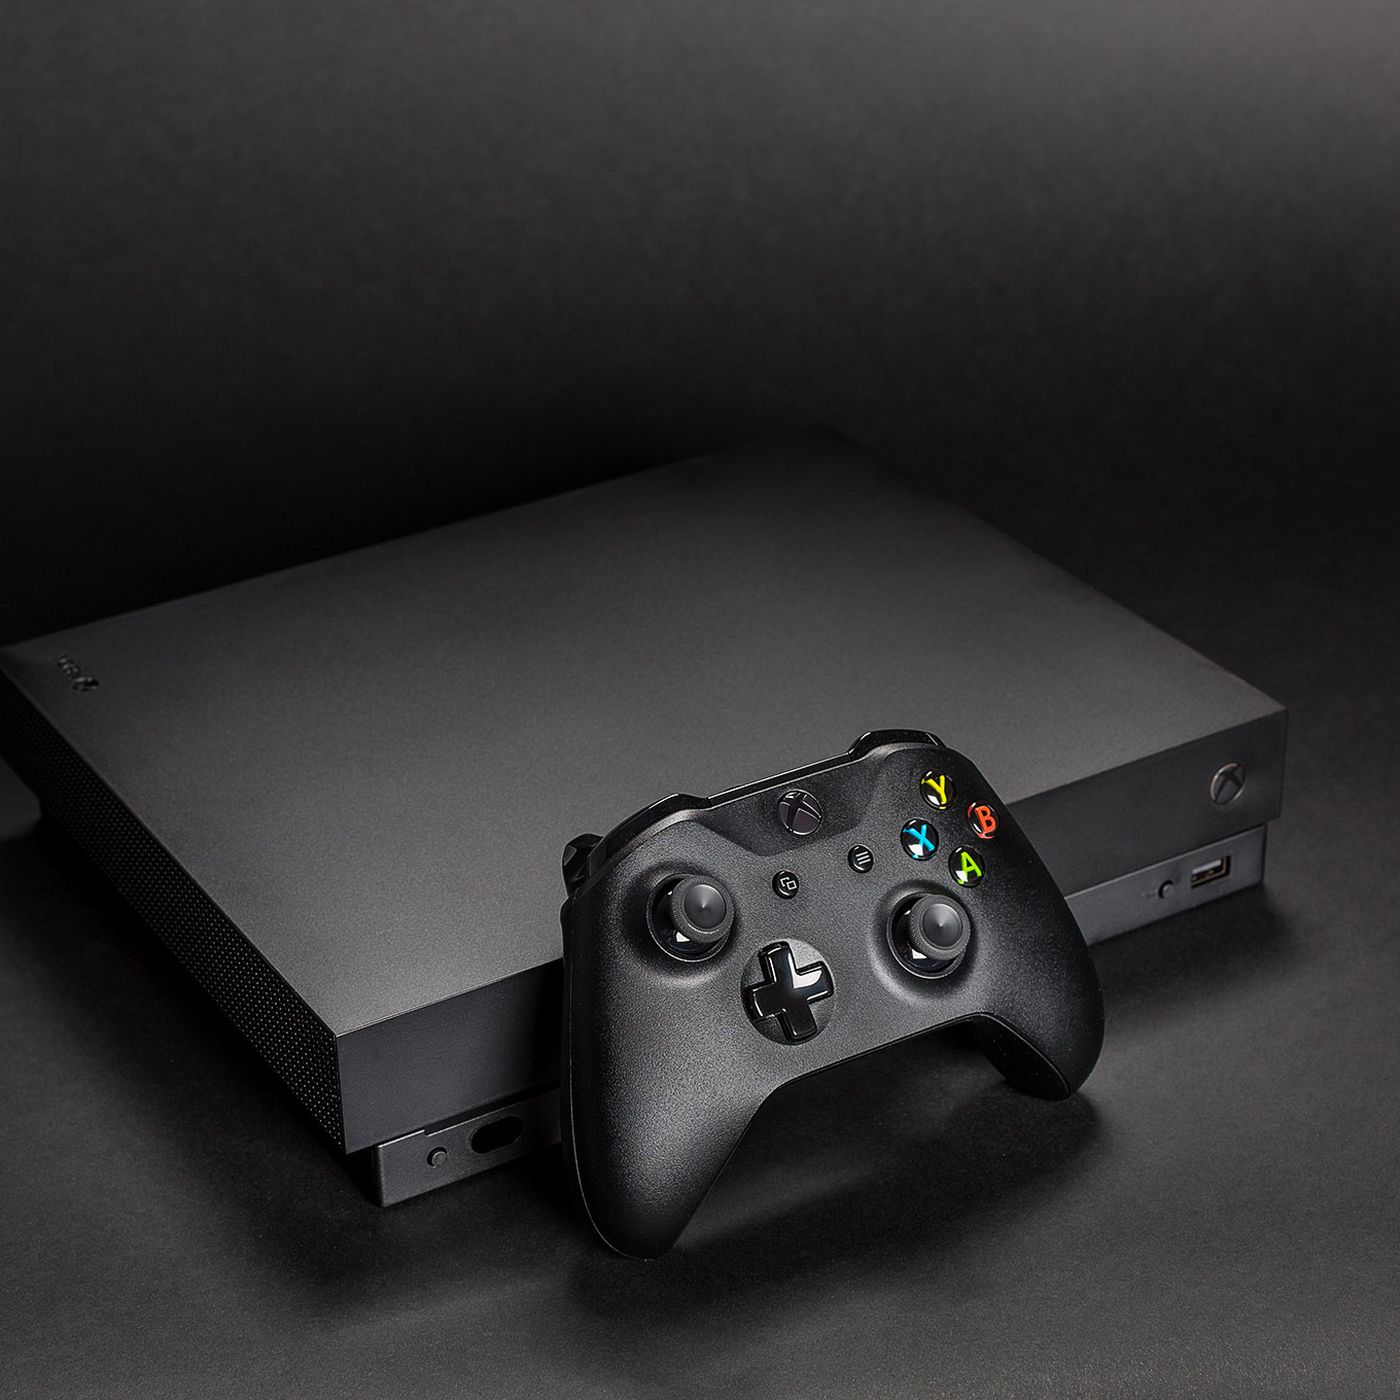 Xbox may now have an edge over PS